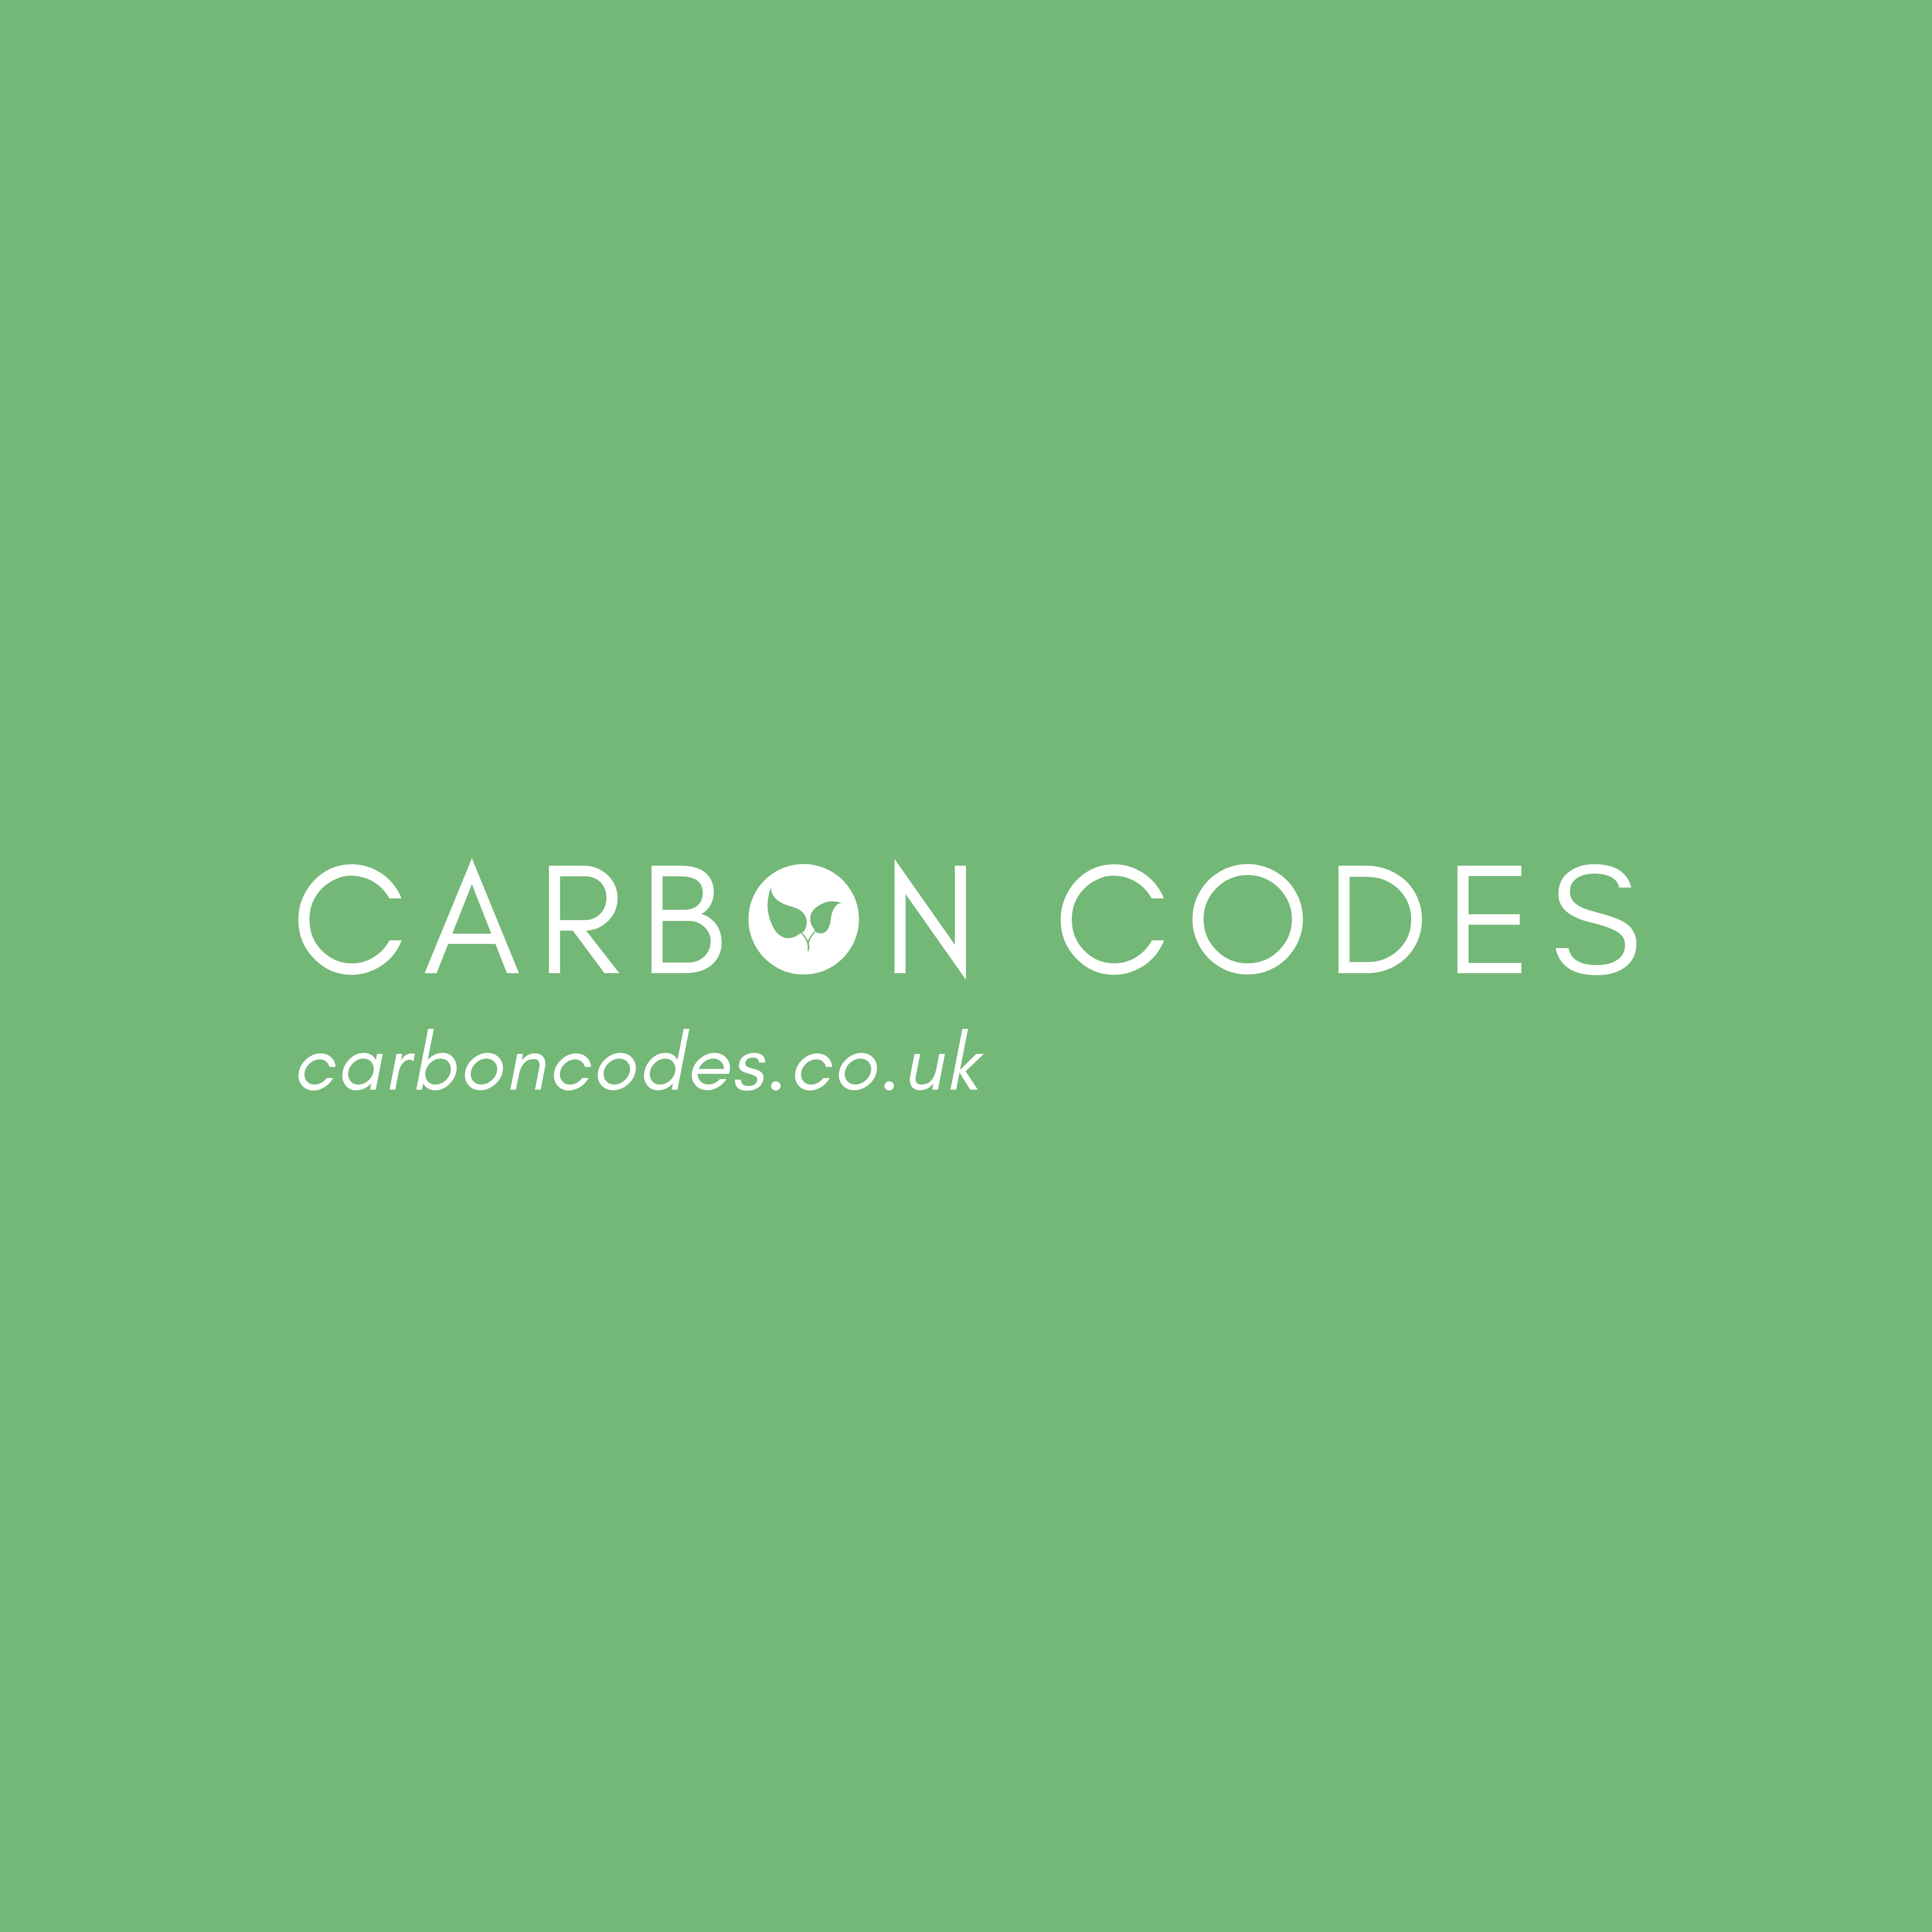 ID- green background with white lettering which reads. Carbon codes carboncodes.co.uk earn discounts for choosing sustainable food. Carbon code launches today! Sign up now